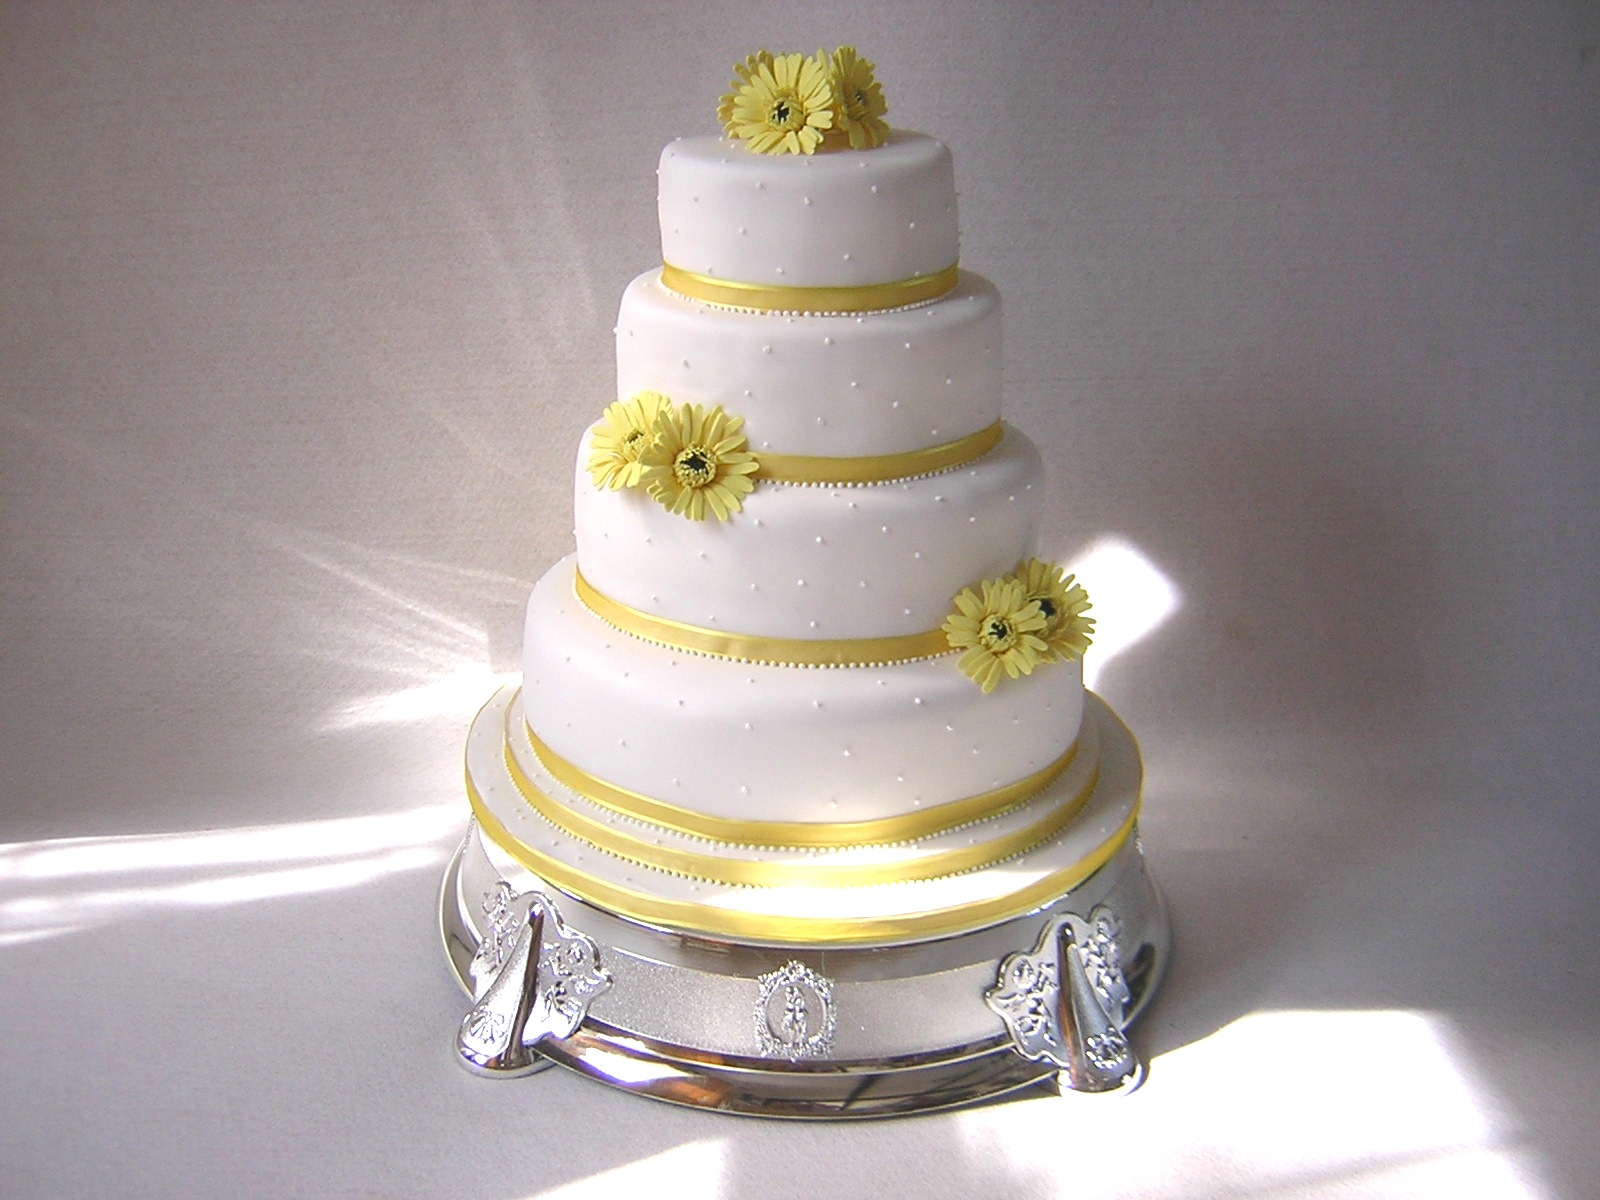 Tiered Wedding Cake Prices